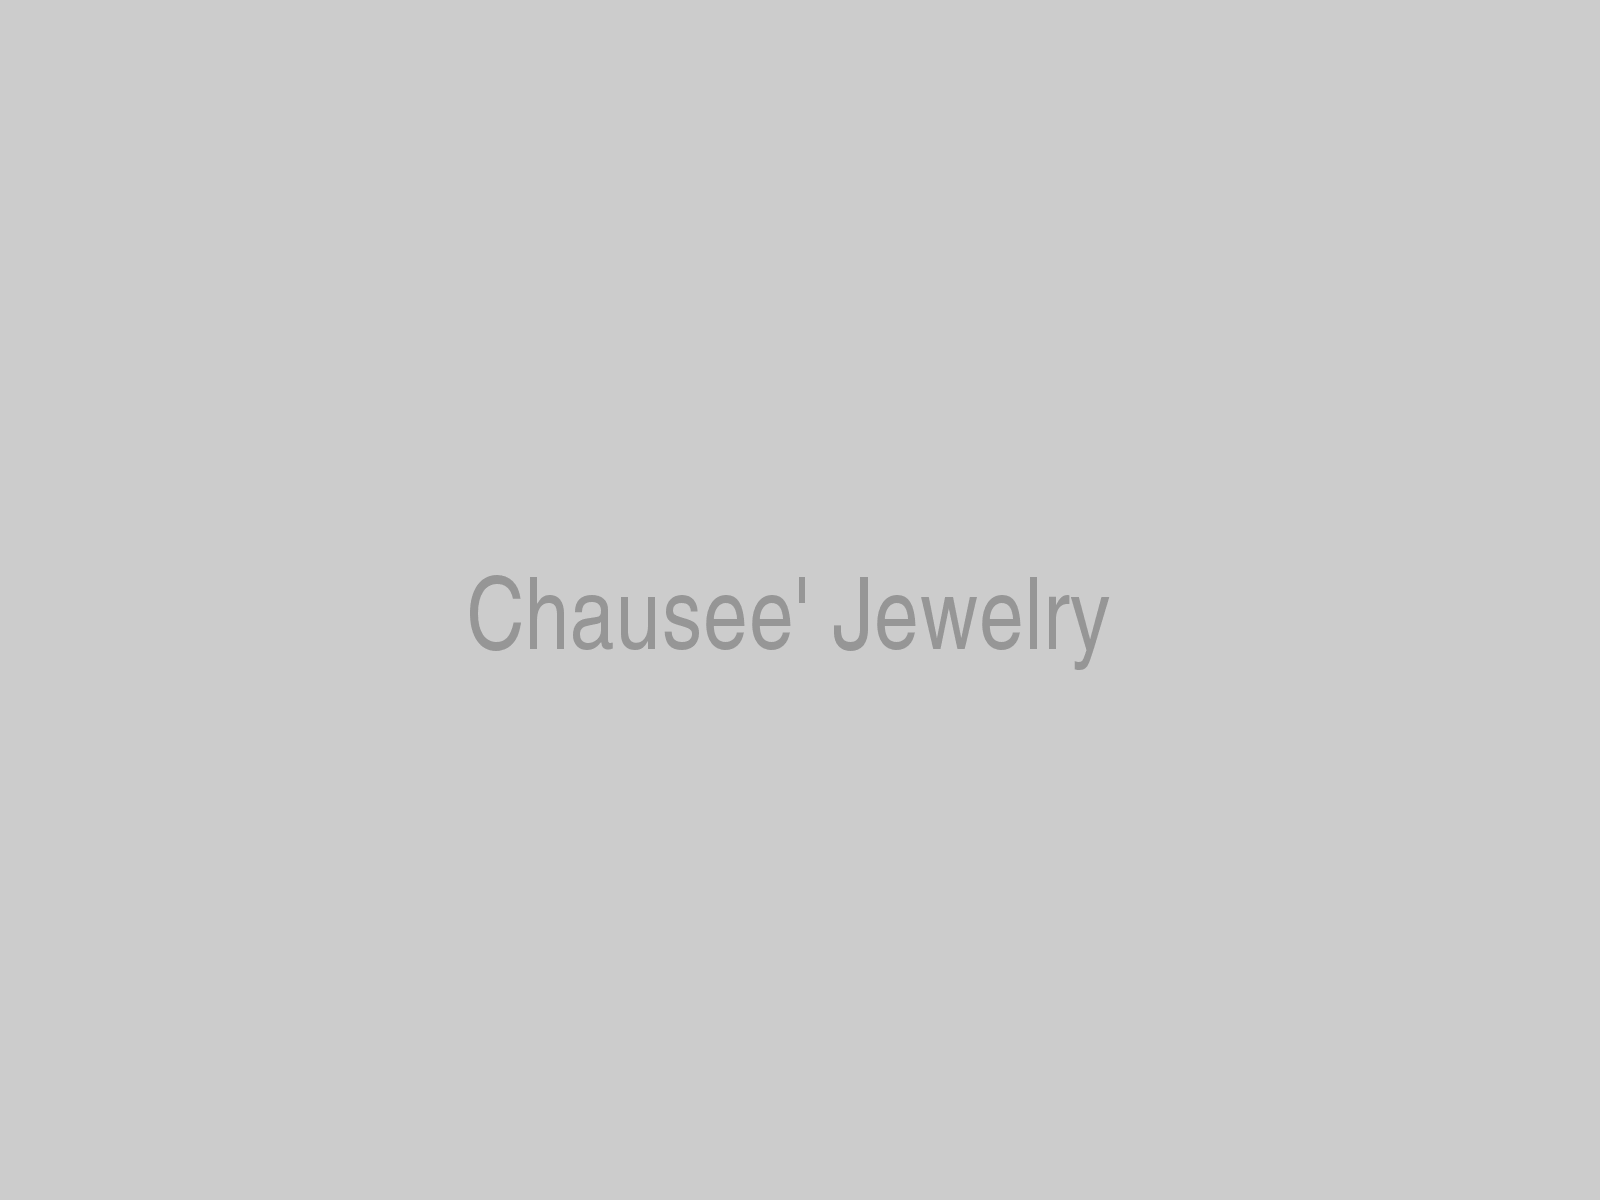 Chausee' Jewelry